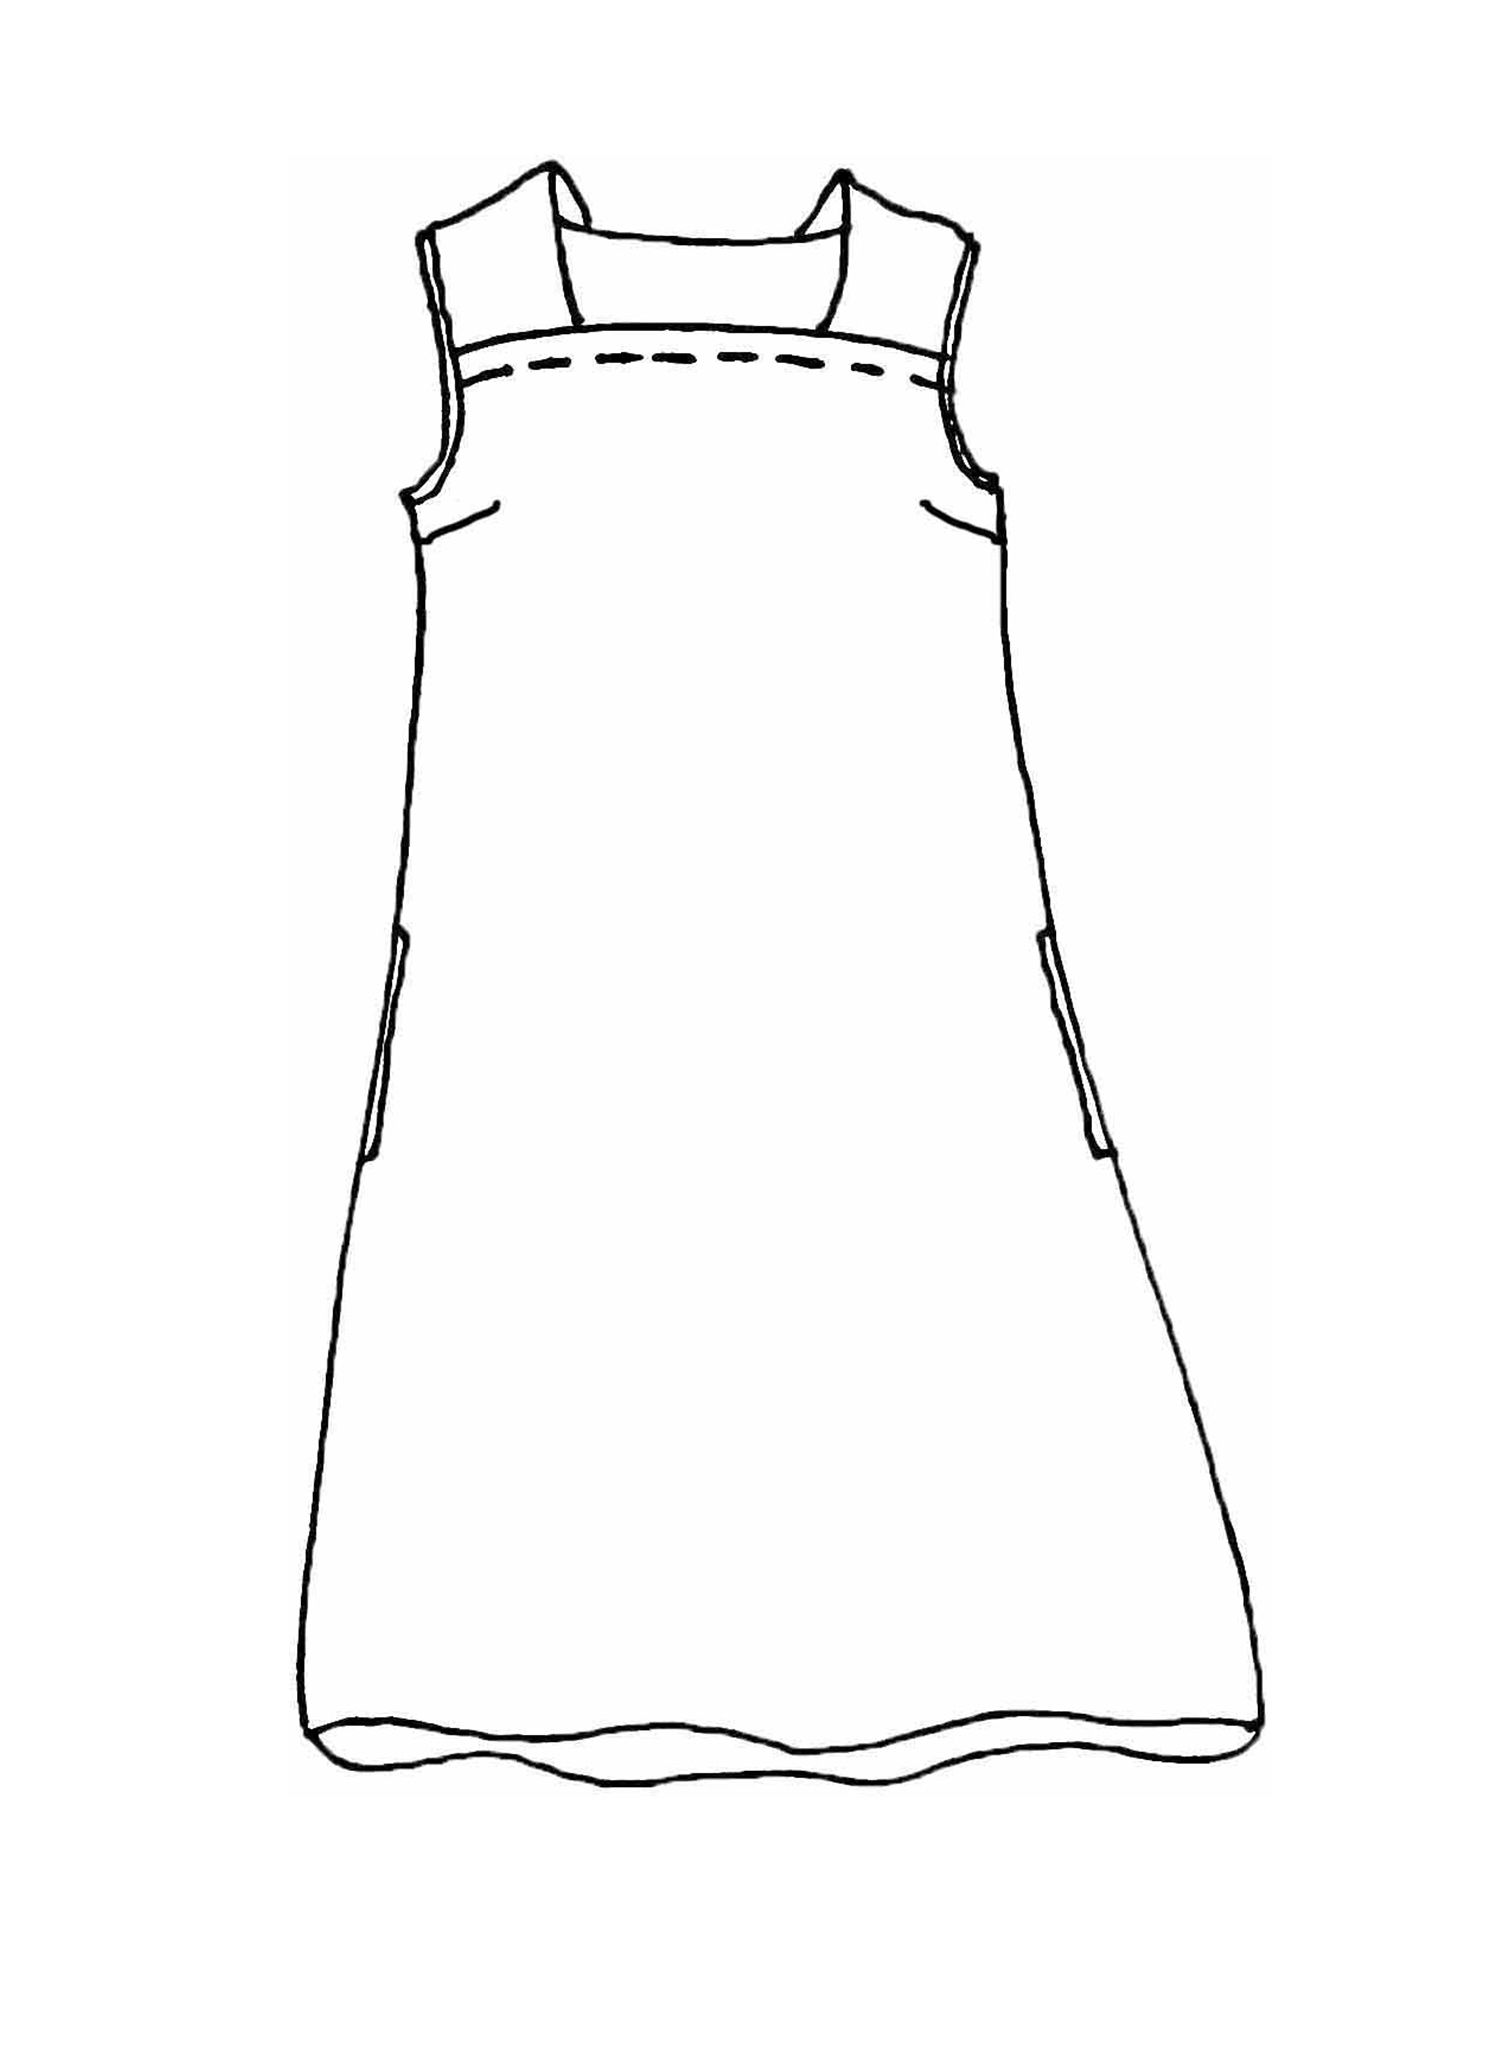 Square Neck Dress sketch image